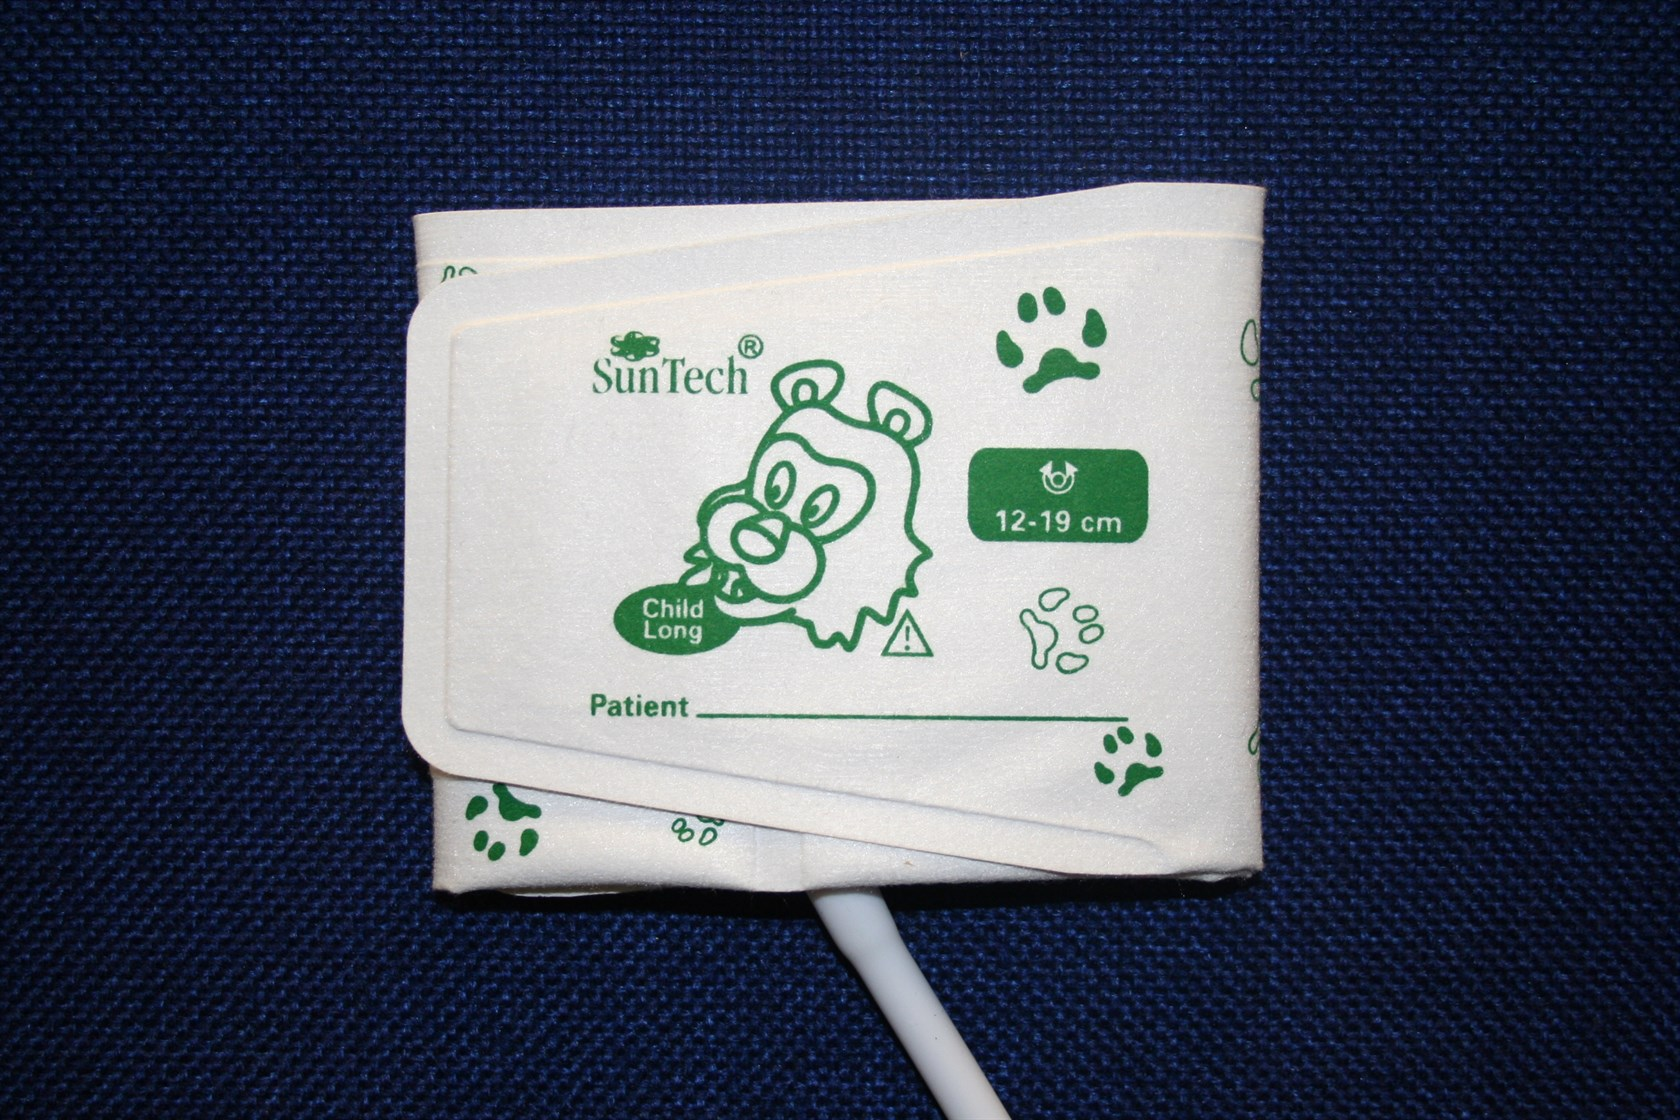 Child Long Disposable BP Cuff (x20)